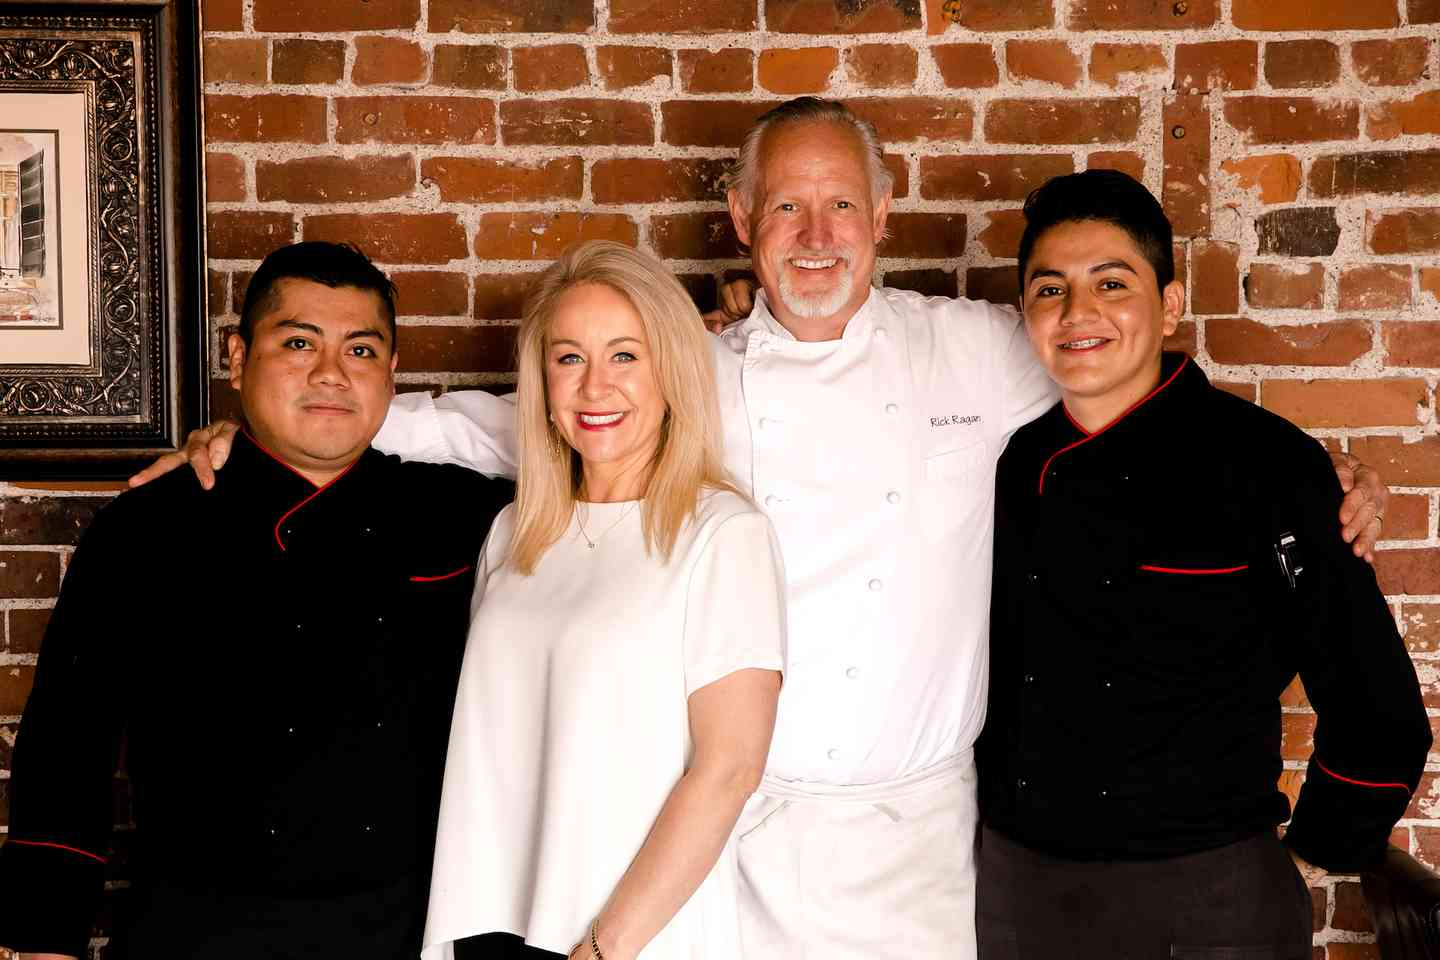 Restaurant staff and owners